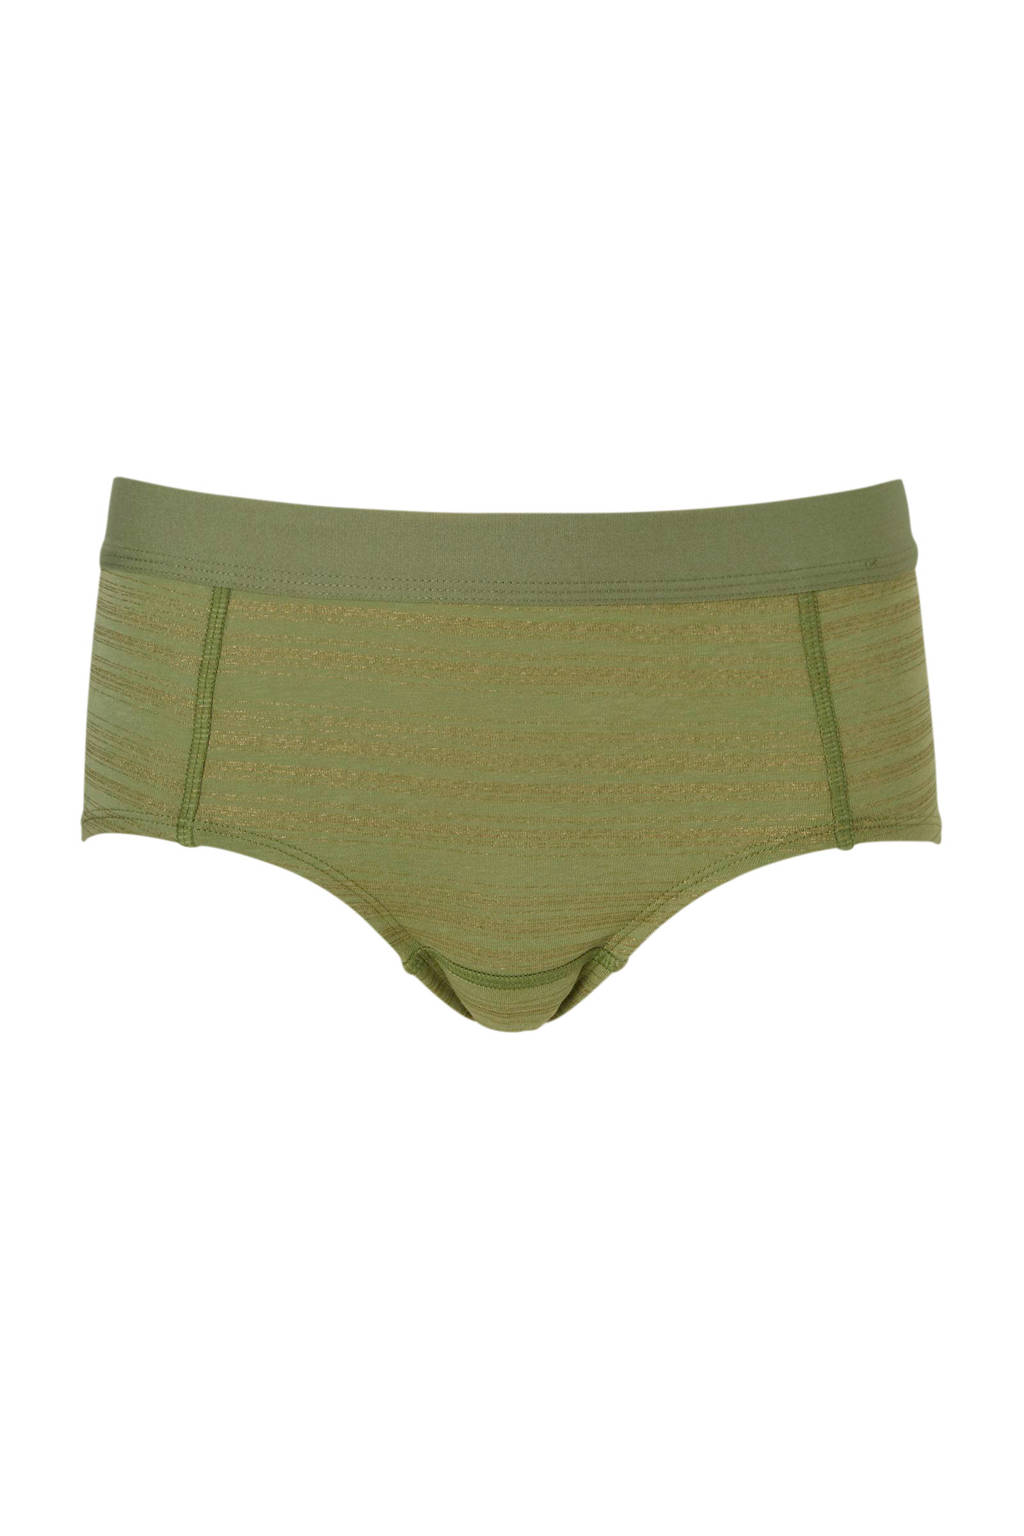 Boobs & Bloomers tienershort, Groen/goud